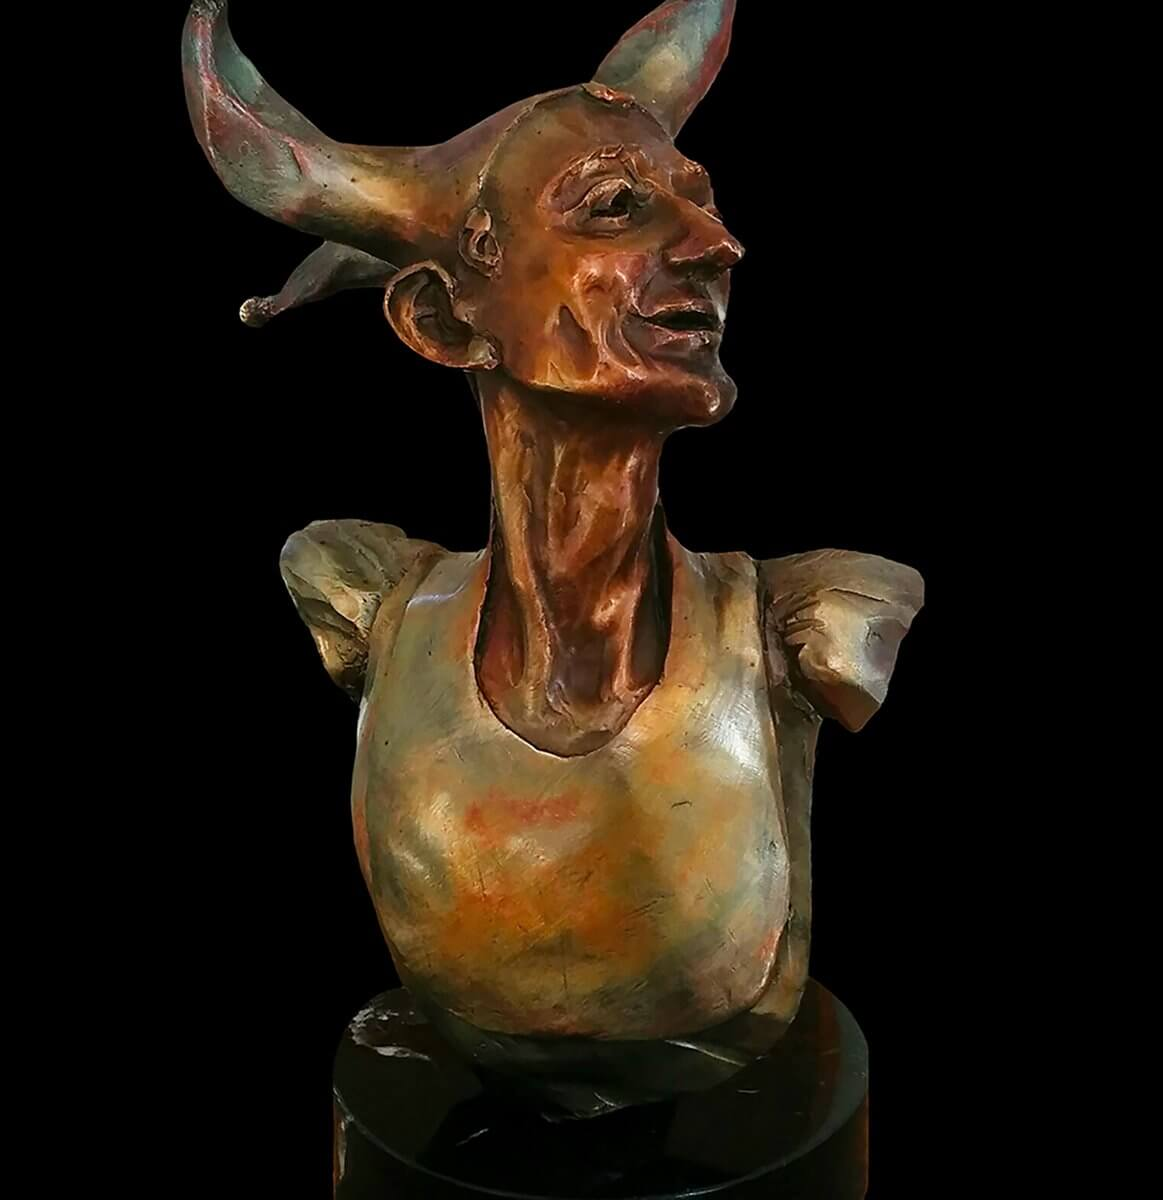 The Jester bust is a fun new small bronze sculpture created by Andrew DeVries copyright 2019